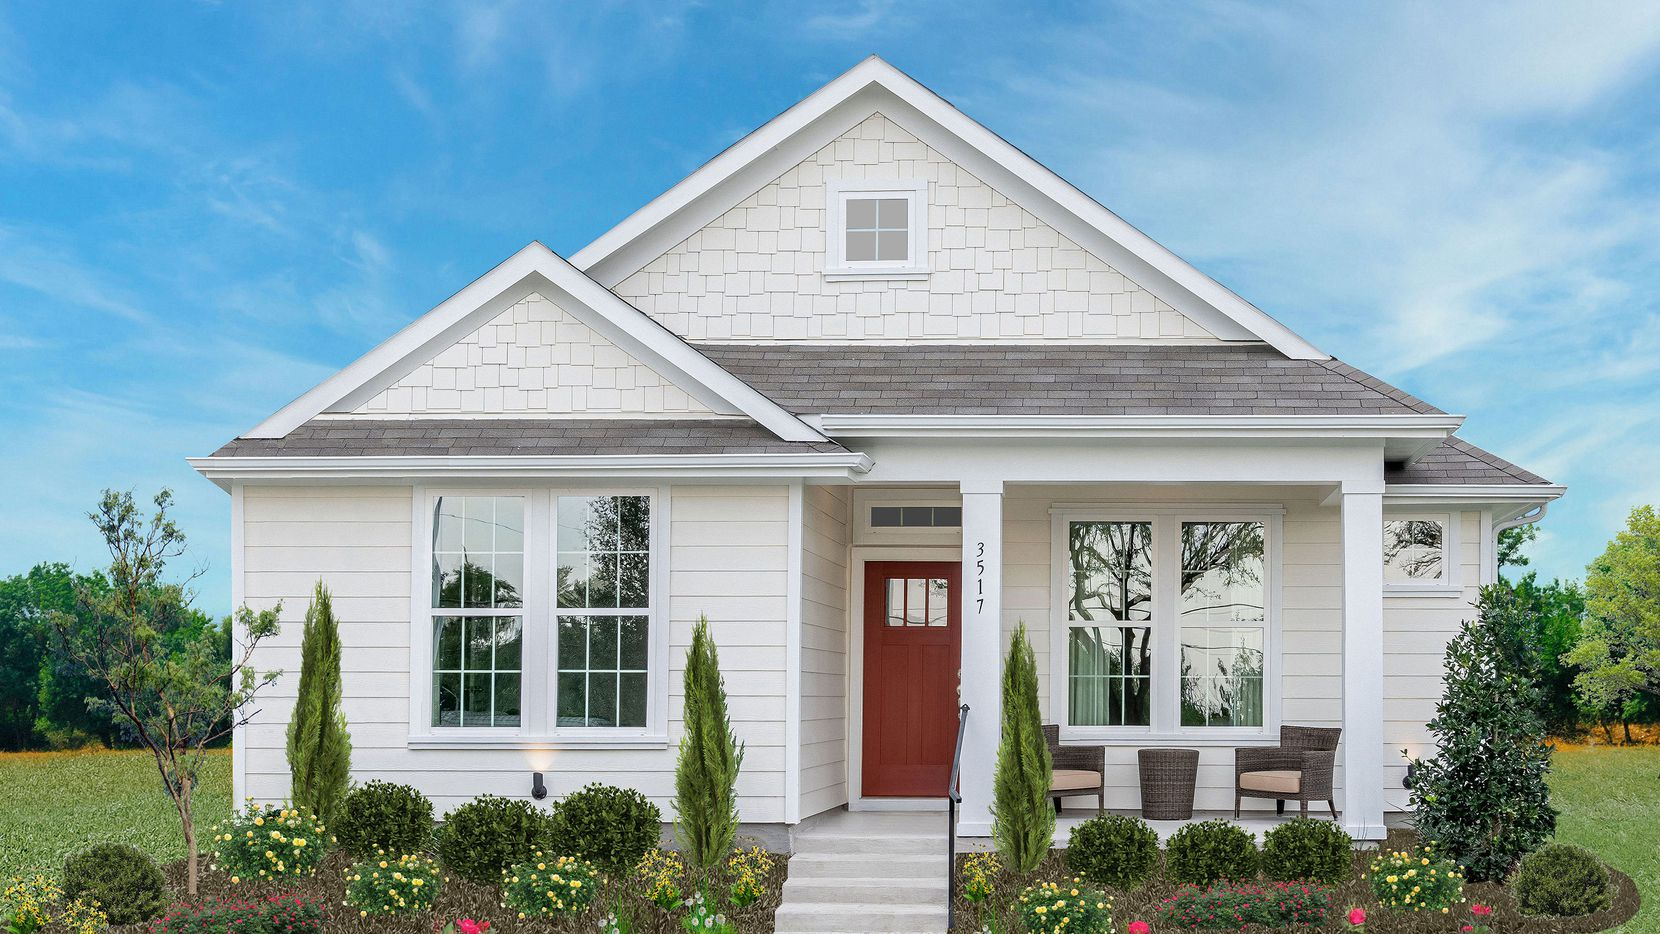 The 2021 McSam Awards-winning Jasmine 15 plan from Landon Homes is open for touring at 3517 Petals Place in Rowlett's Magnolia Landing community.